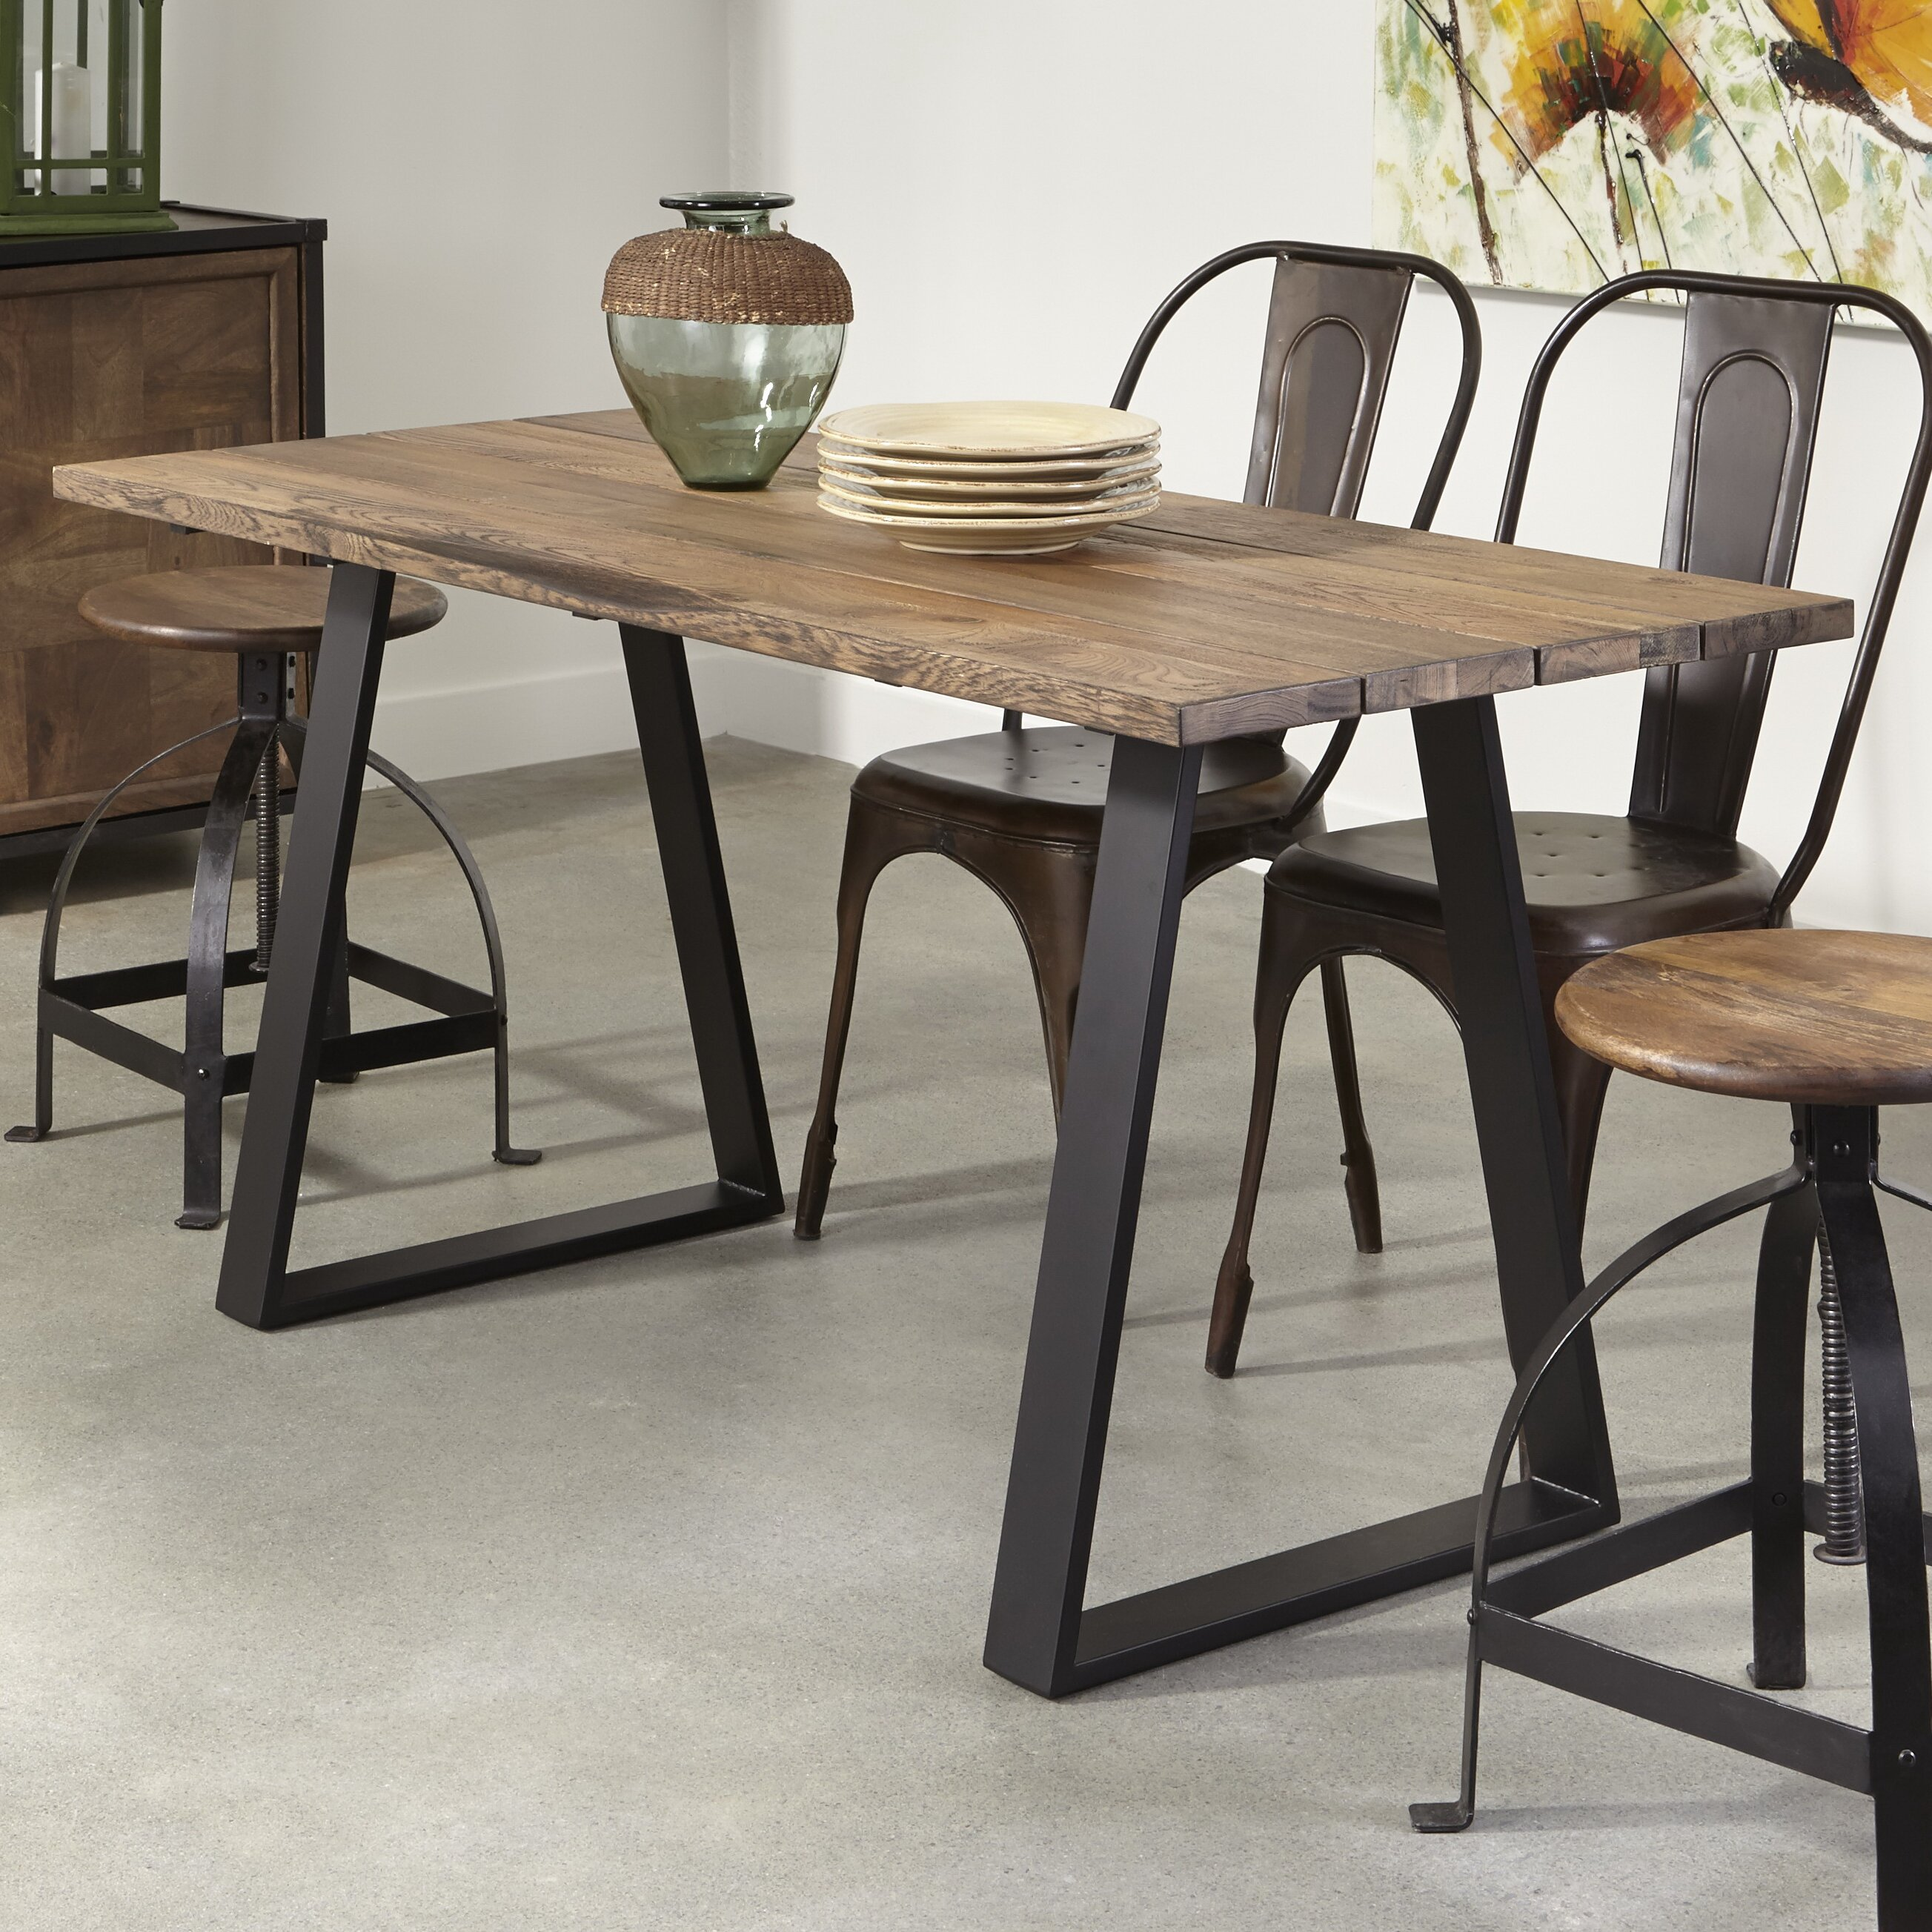 Trent Austin Design Ukiah Dining Table